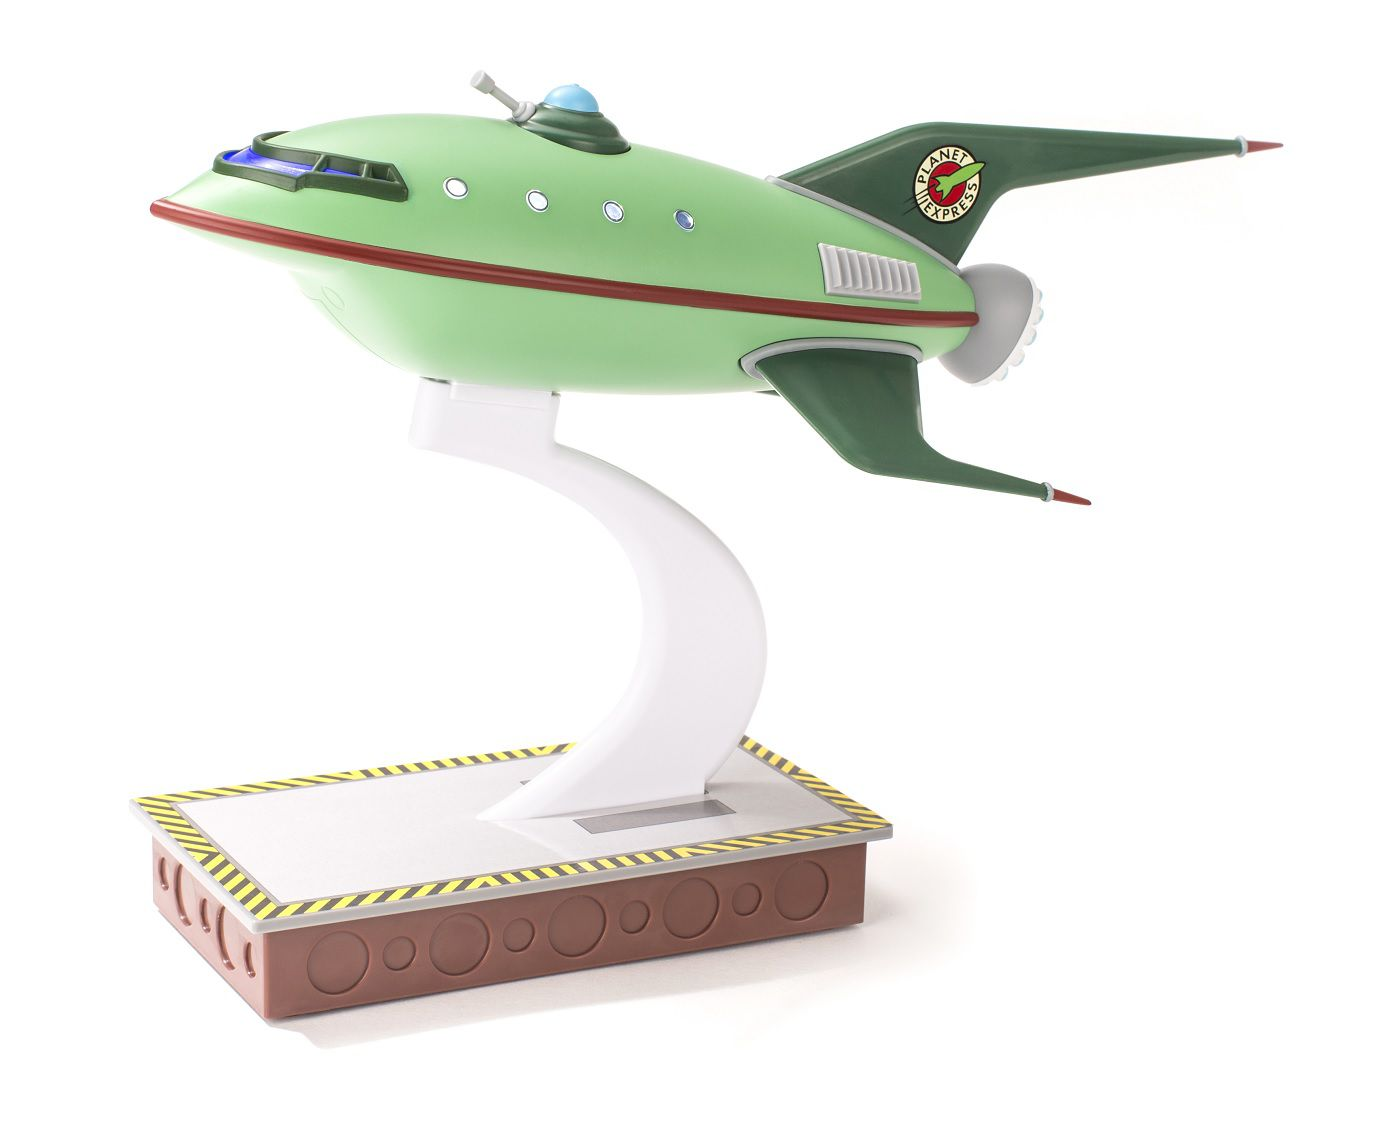 Réplica Planet Express Ship : Futurama (Master Series Replica) - Quantum Mechanix